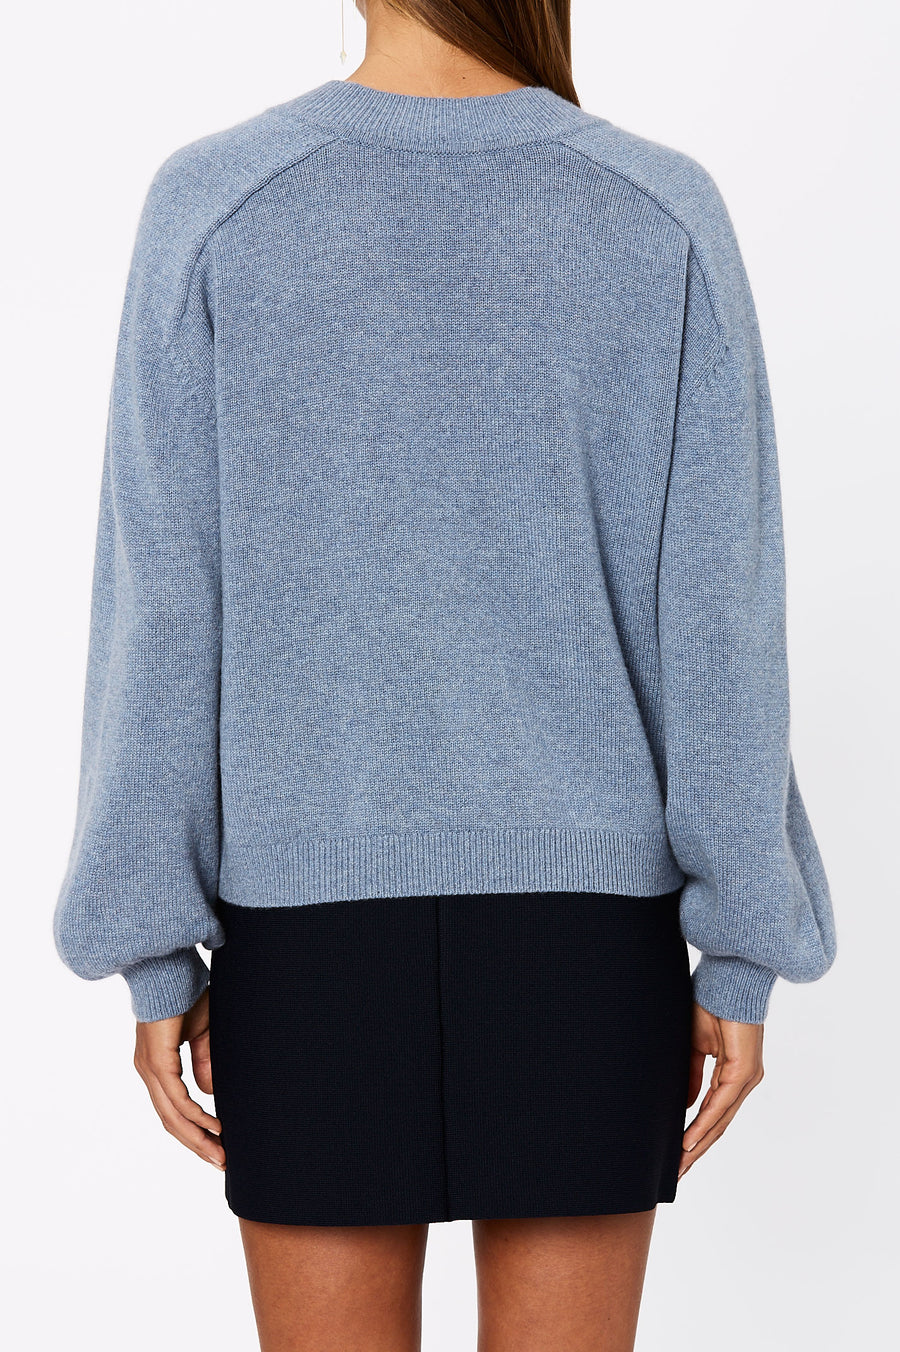 The Cashmere V Neck Sweater has been crafted from a luxuriously soft cashmere